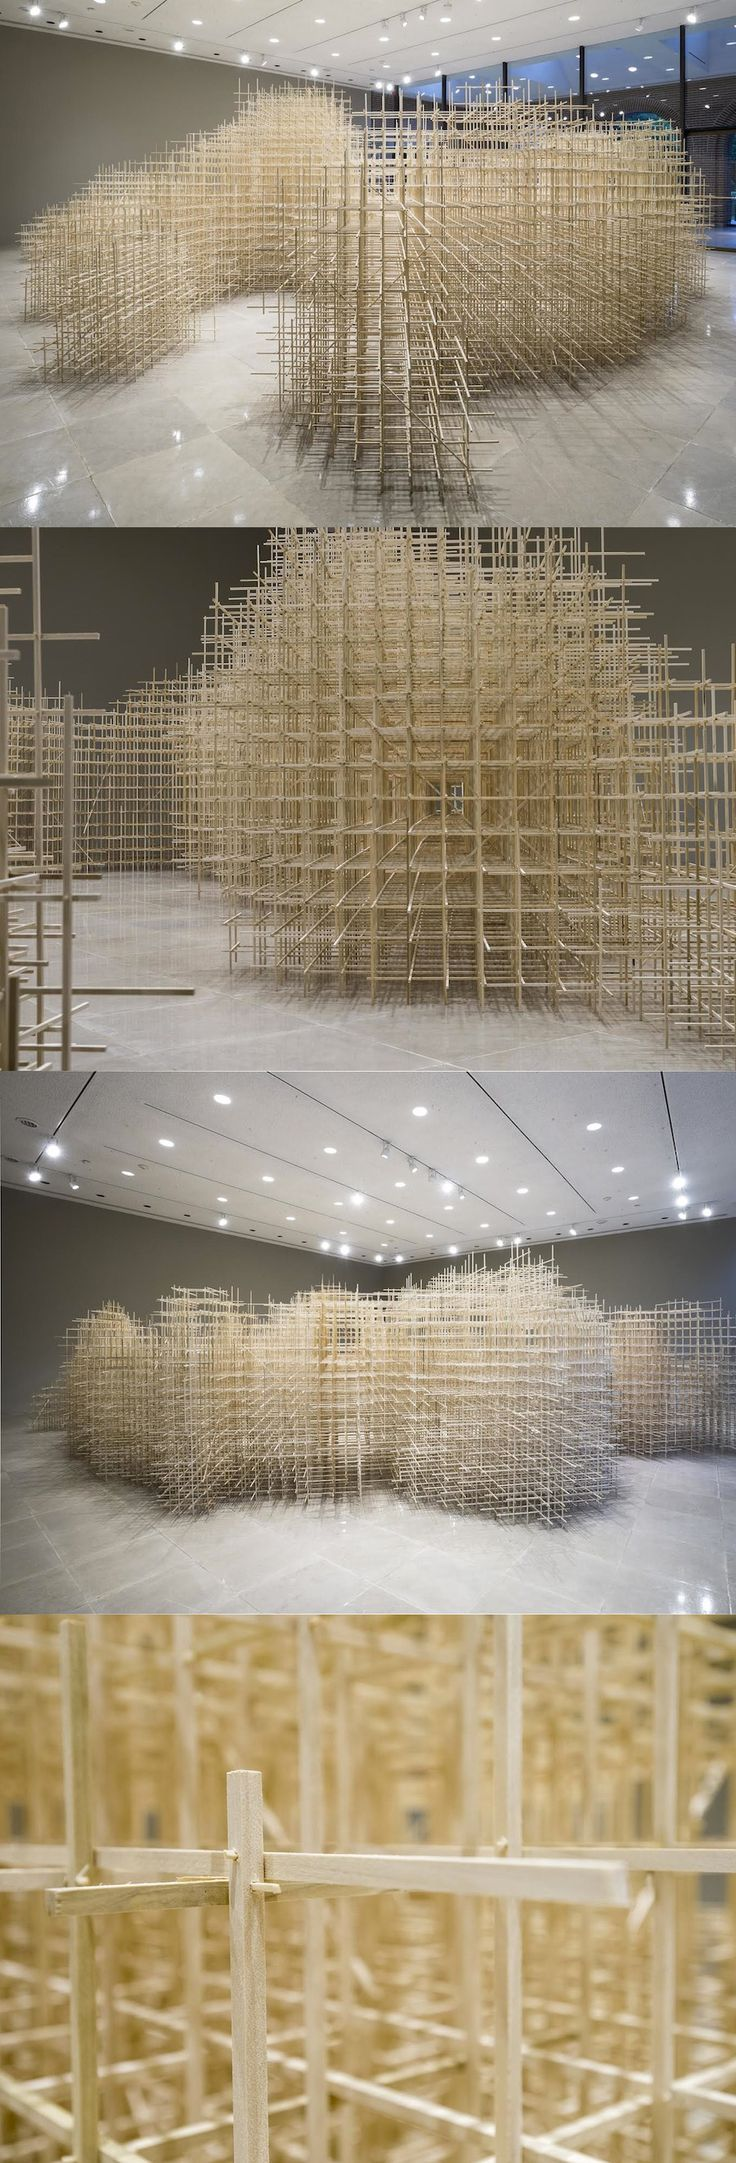 A Monumental Scaffolding of Poplar Wood at Rice Gallery by Ben Butler http://www.thisiscolossal.com/2015/07/unbounded-ben-butler/